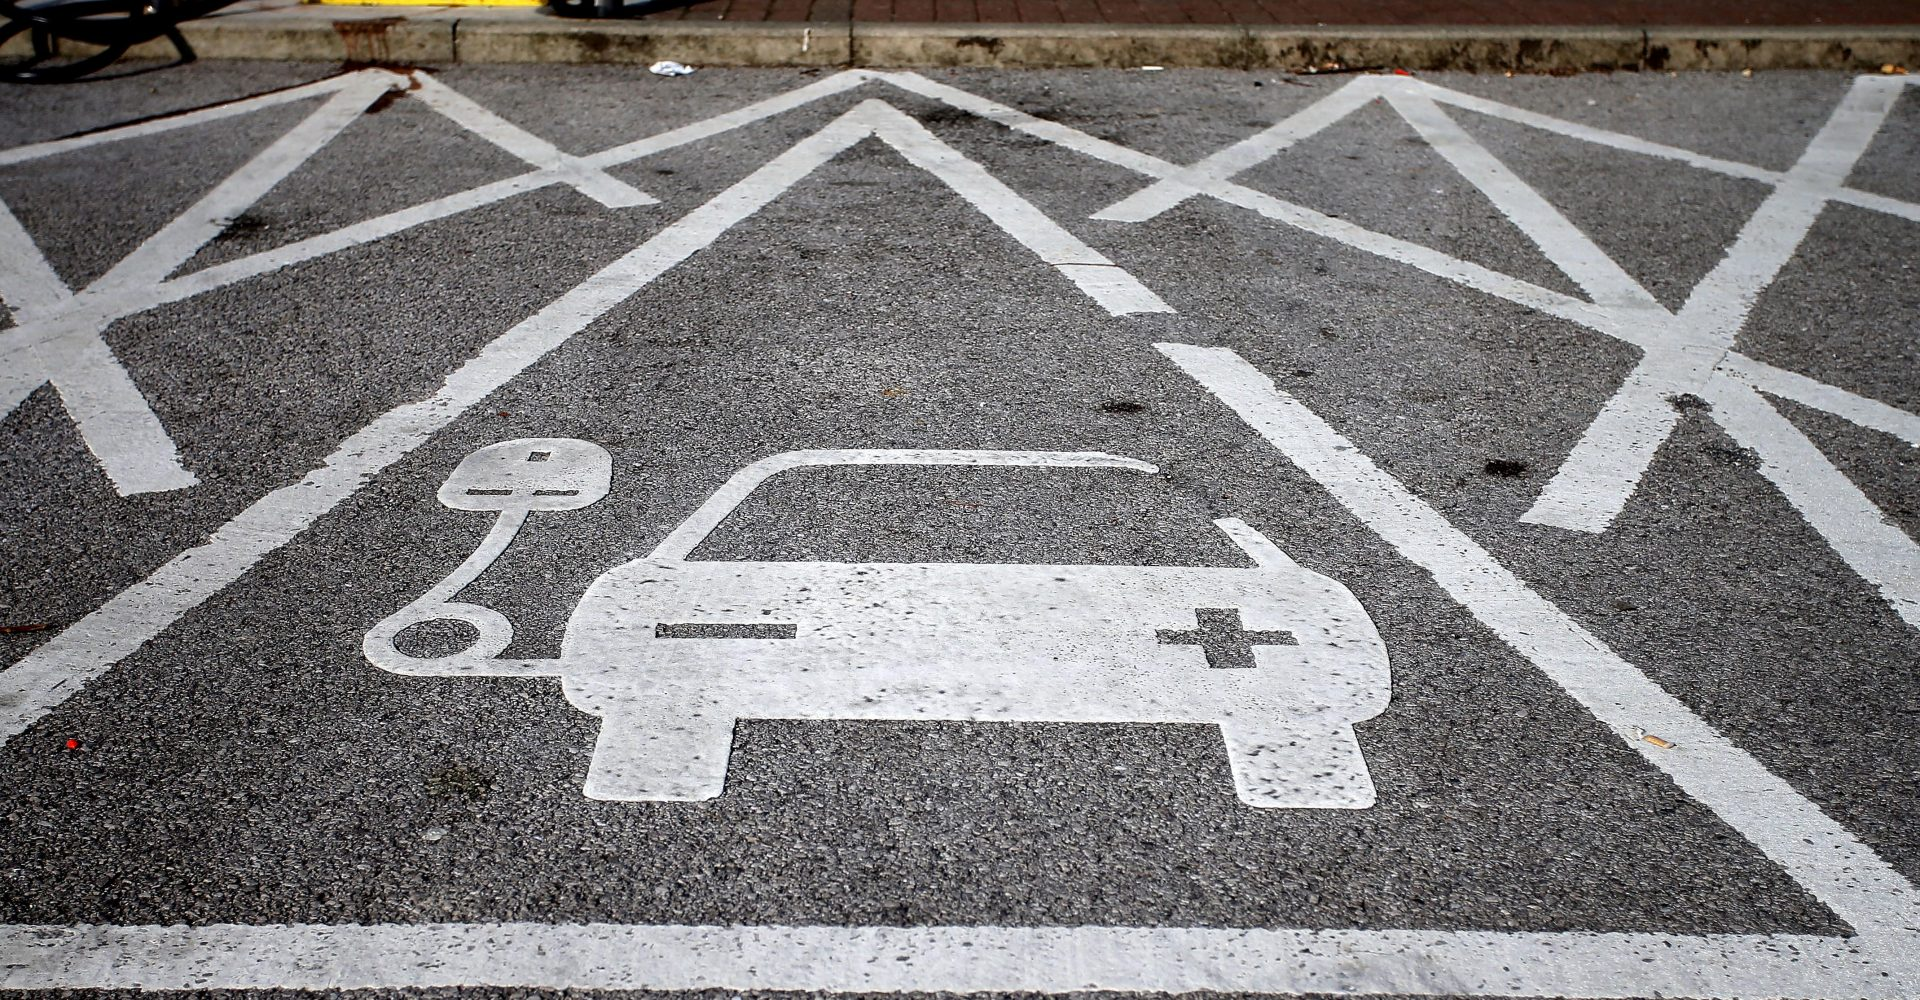 Insurance provider launches roadside charging rescue service for stranded EV owners